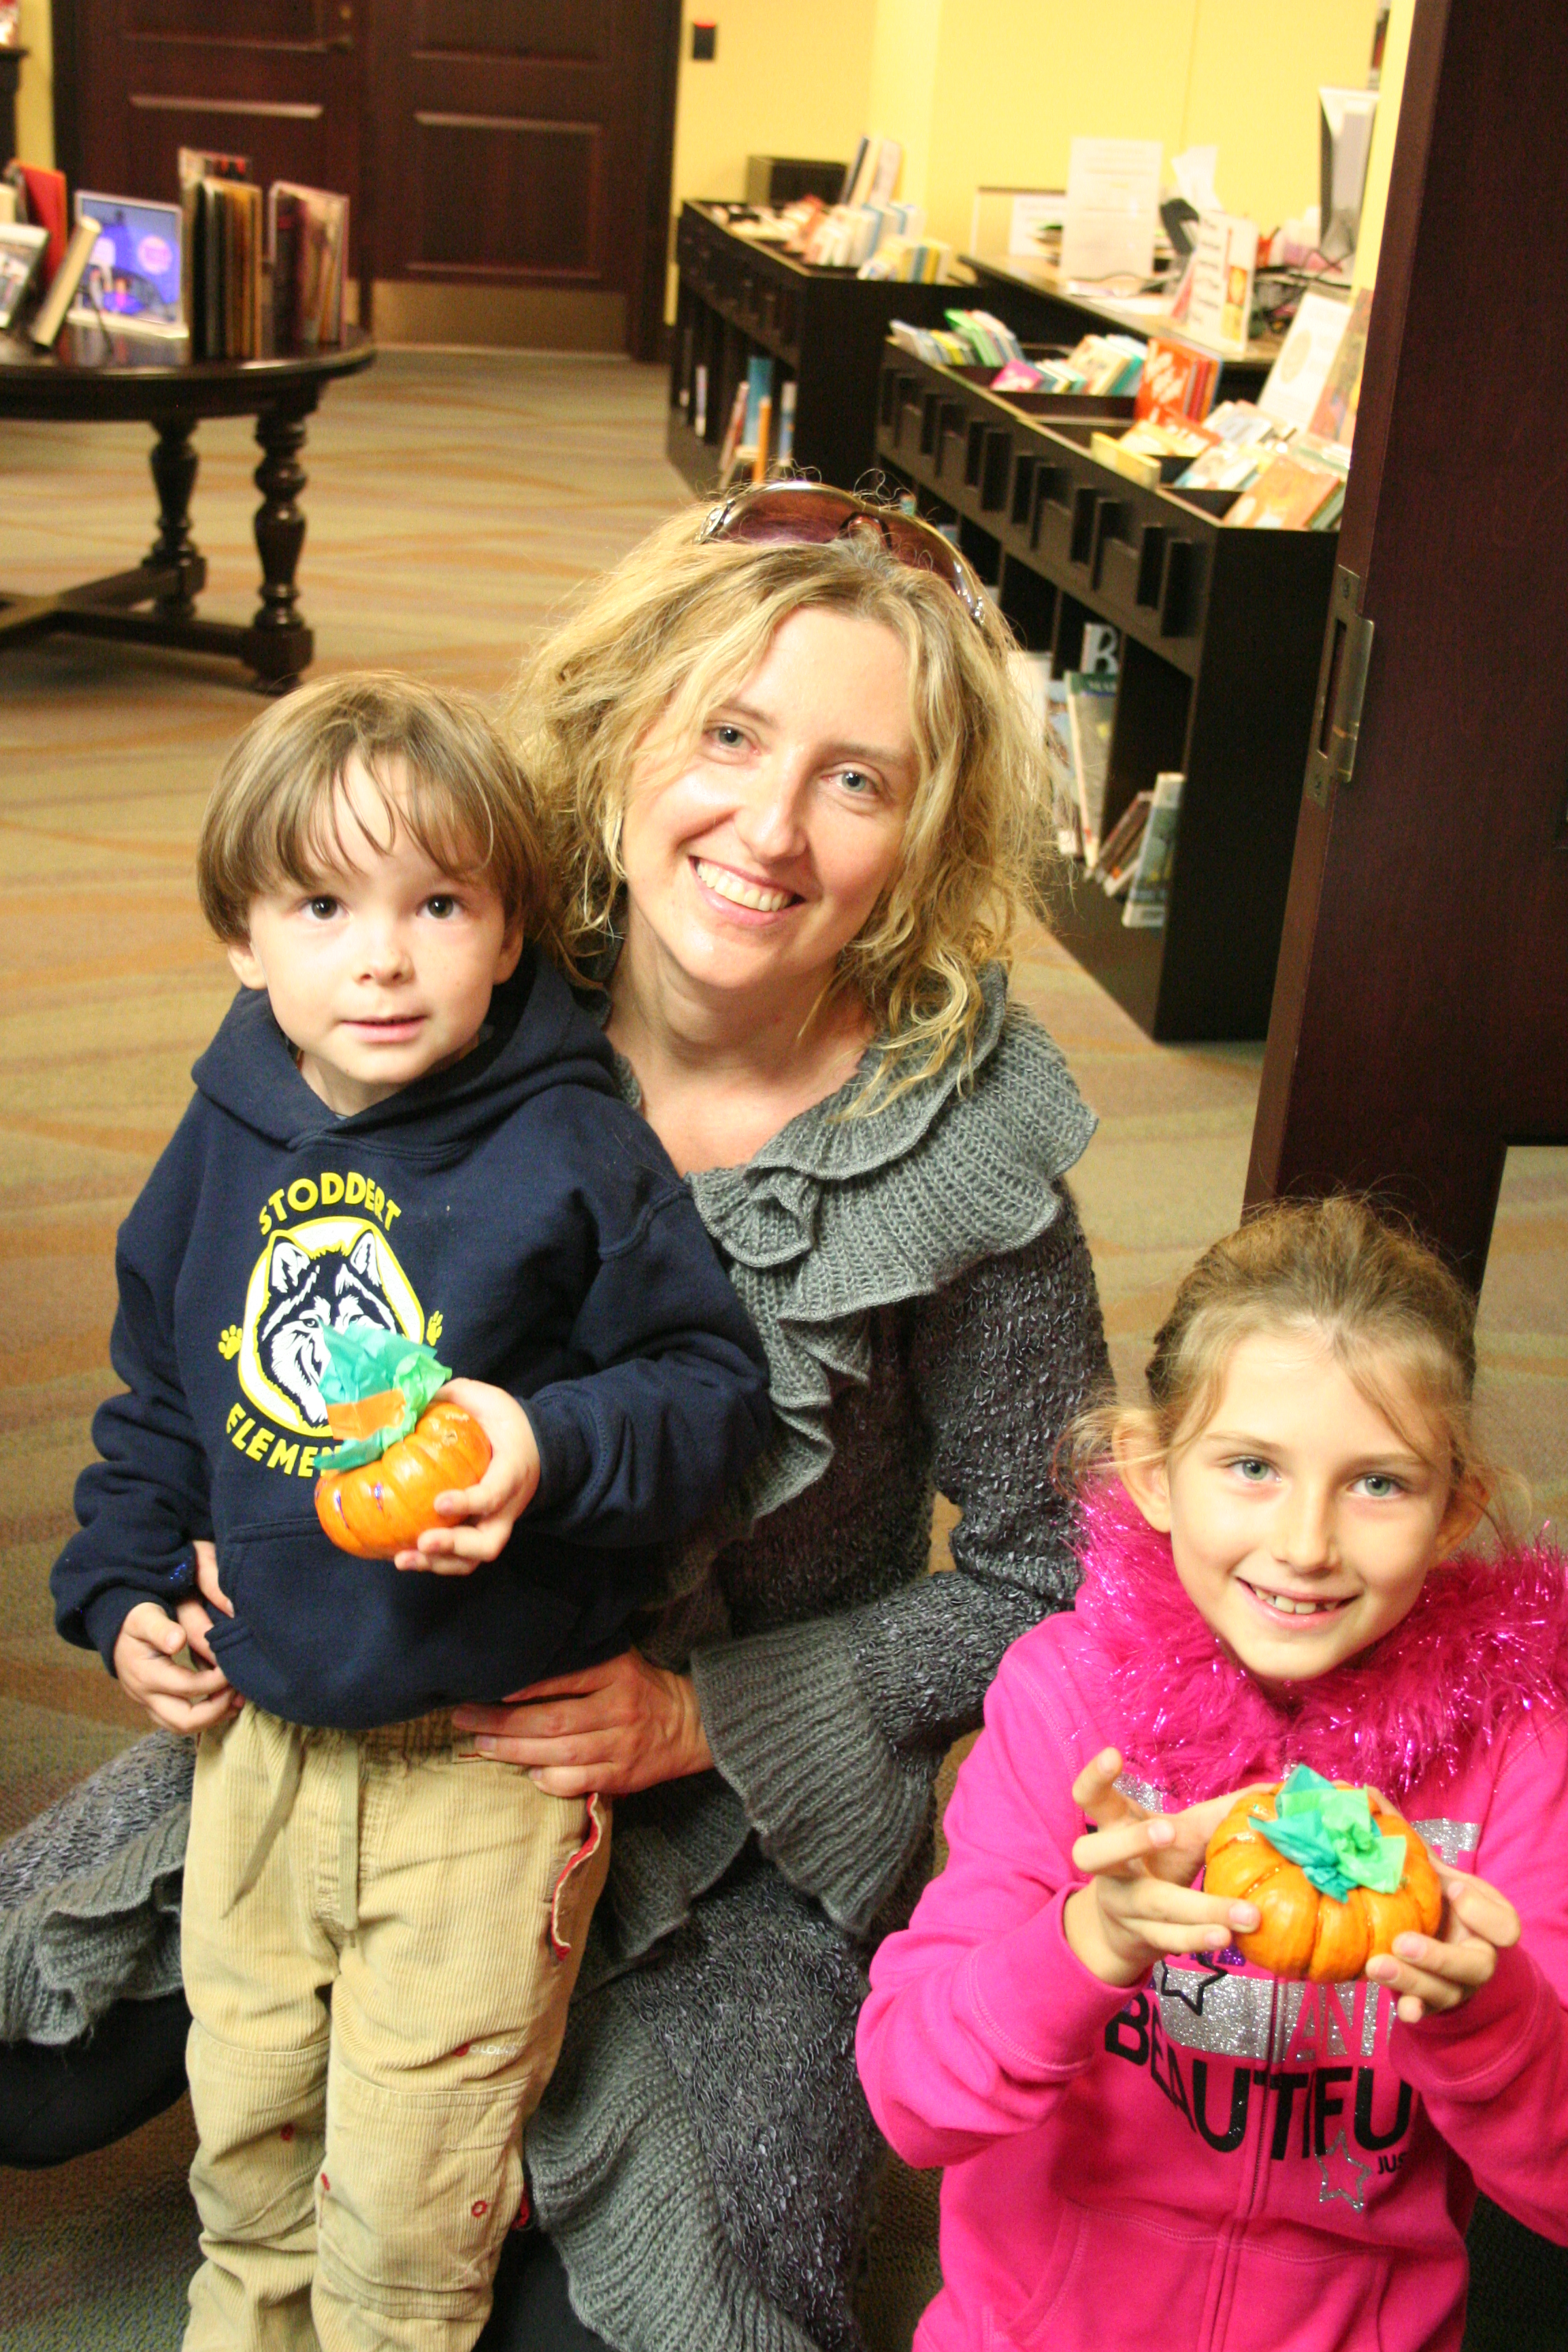 Family with their decorated pumpkins